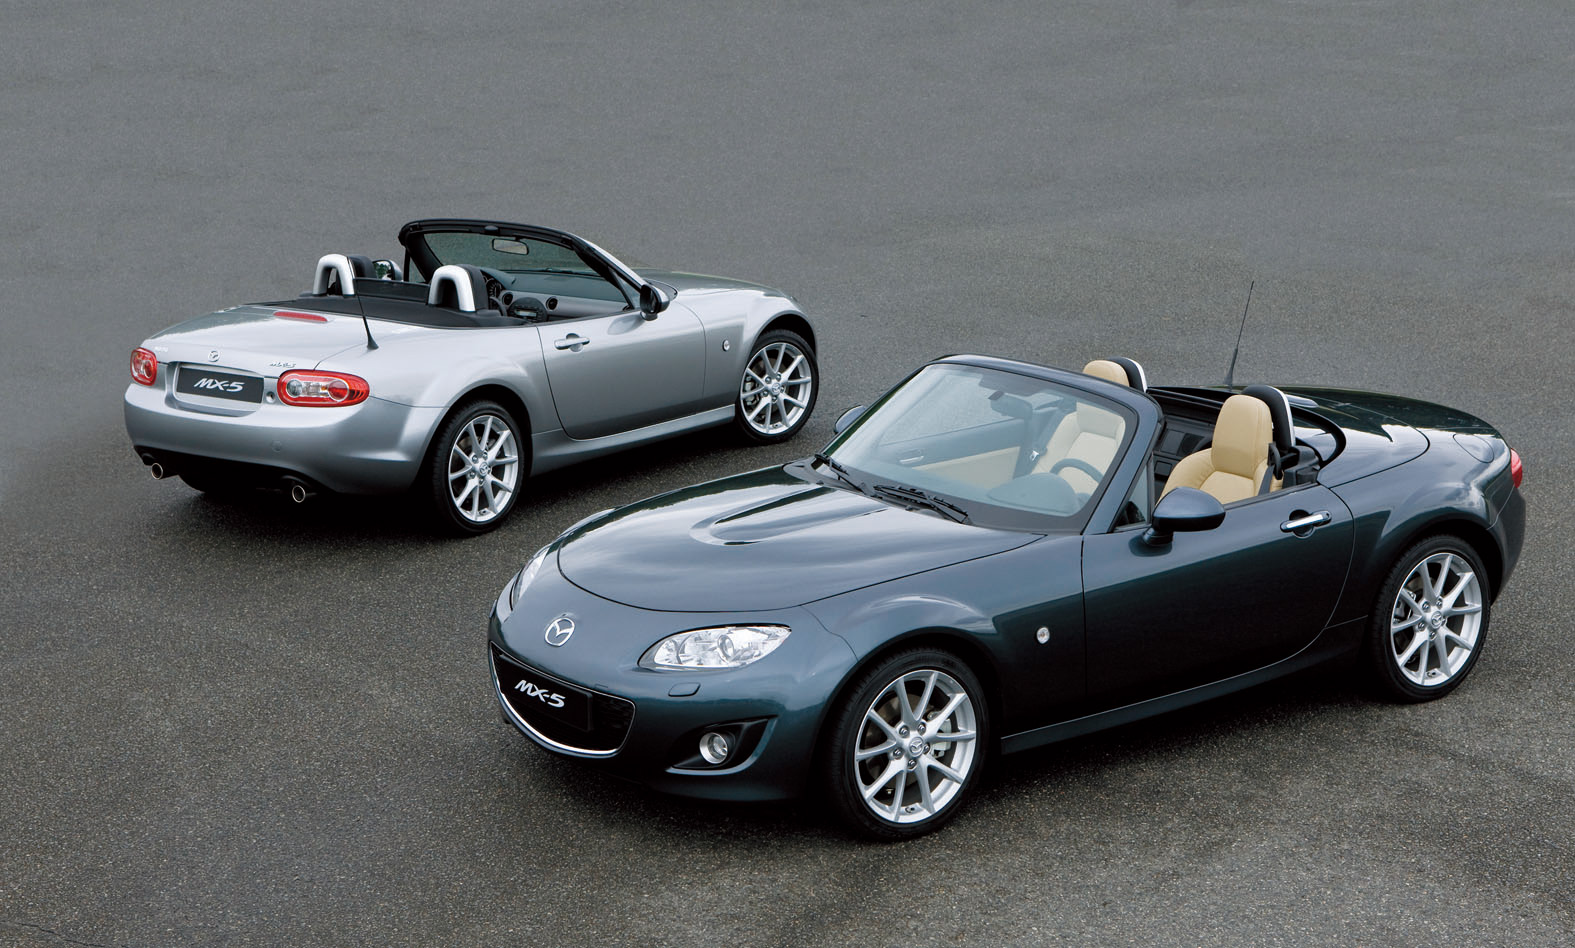 Mazda Mx5 2009 Review Amazing Pictures And Images Look